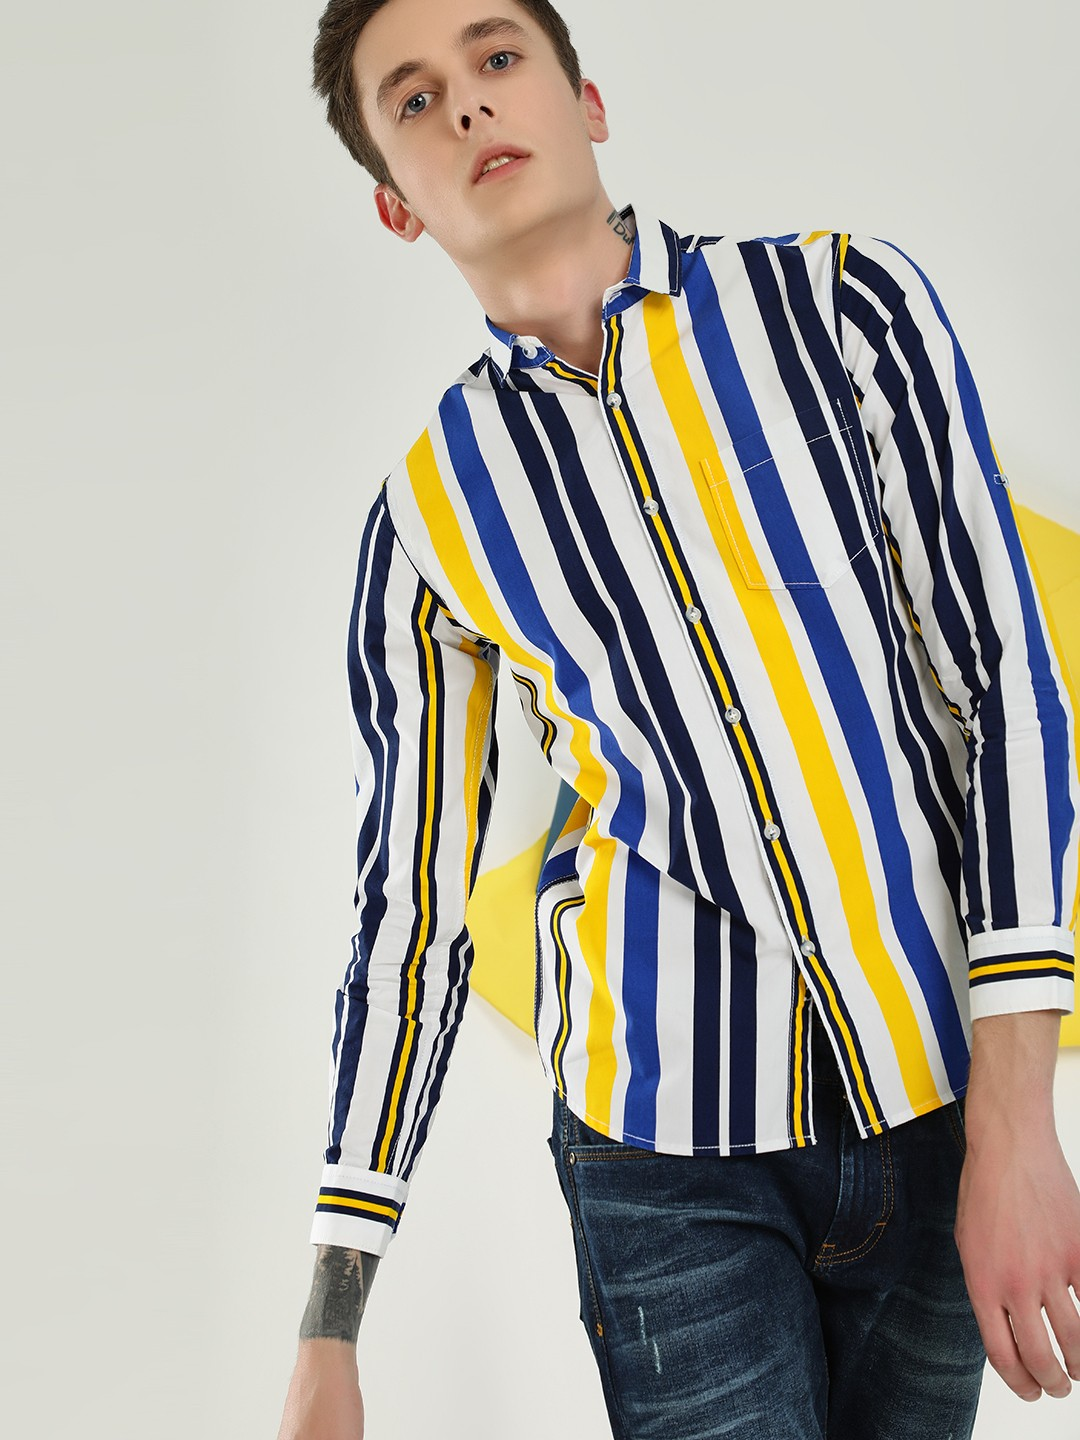 Vulcan White Striped Casual Shirt 1